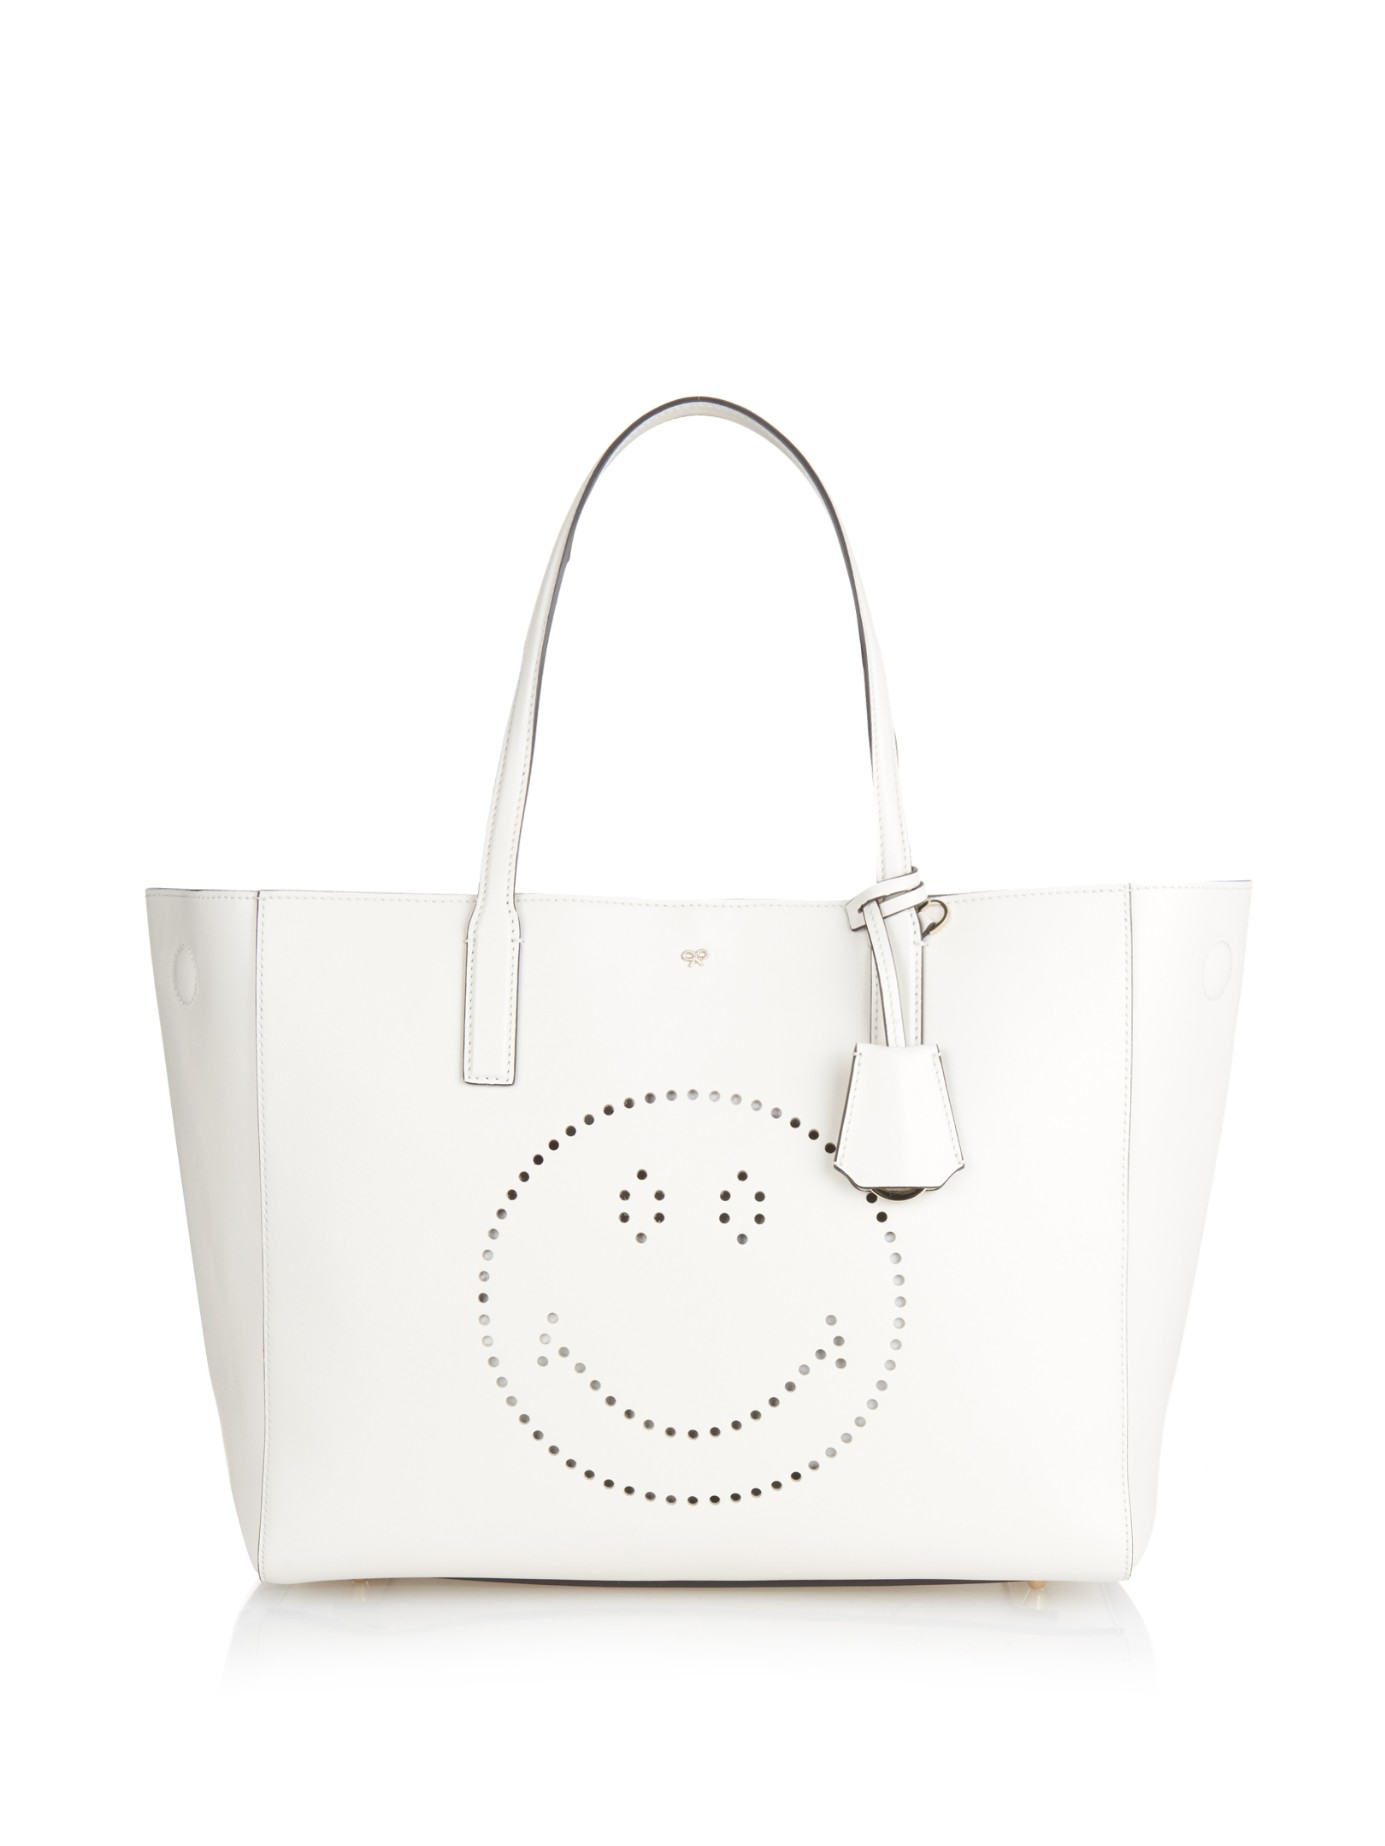 42b62a1c0fc3 Gallery. Previously sold at  MATCHESFASHION.COM · Women s Anya Hindmarch  Ebury Women s Reversible Bags ...